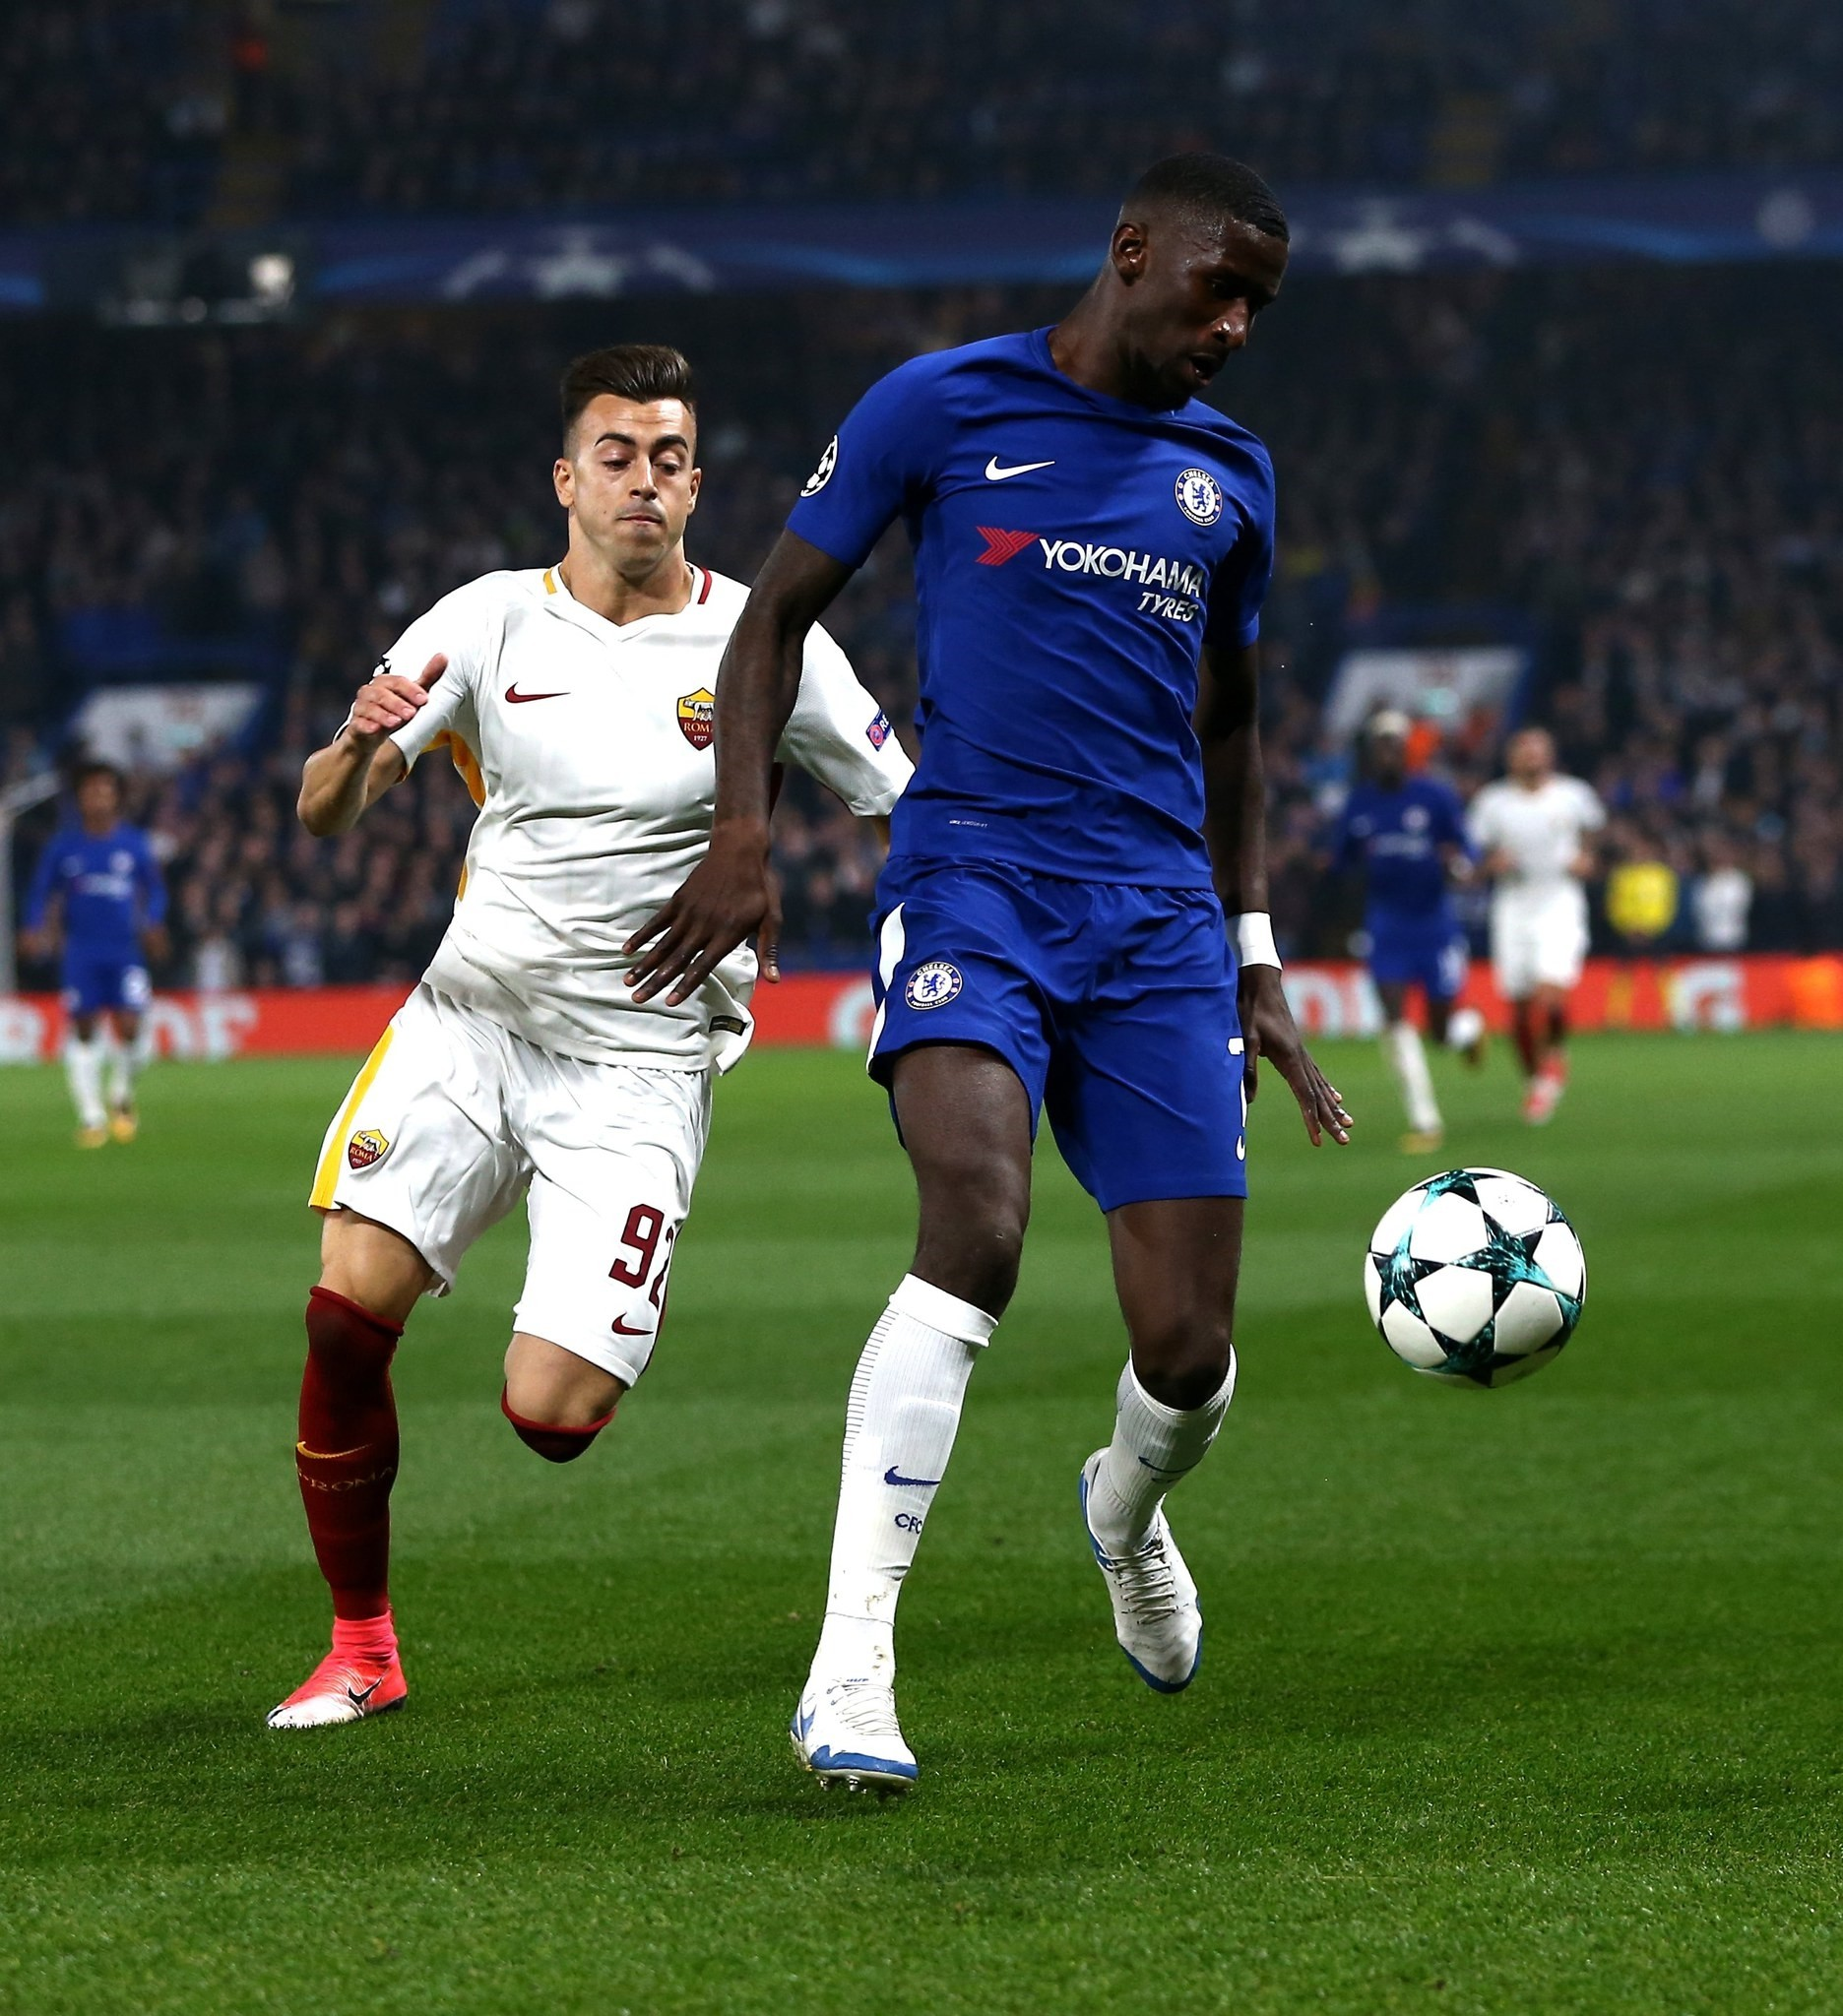 Roma's Stephan El Shaarawy (L) vies for the ball against Chelsea's Antonio Ruediger (R)  during the UEFA Champions League Group C soccer match between Chelsea FC and AS Roma. (EPA Photo)